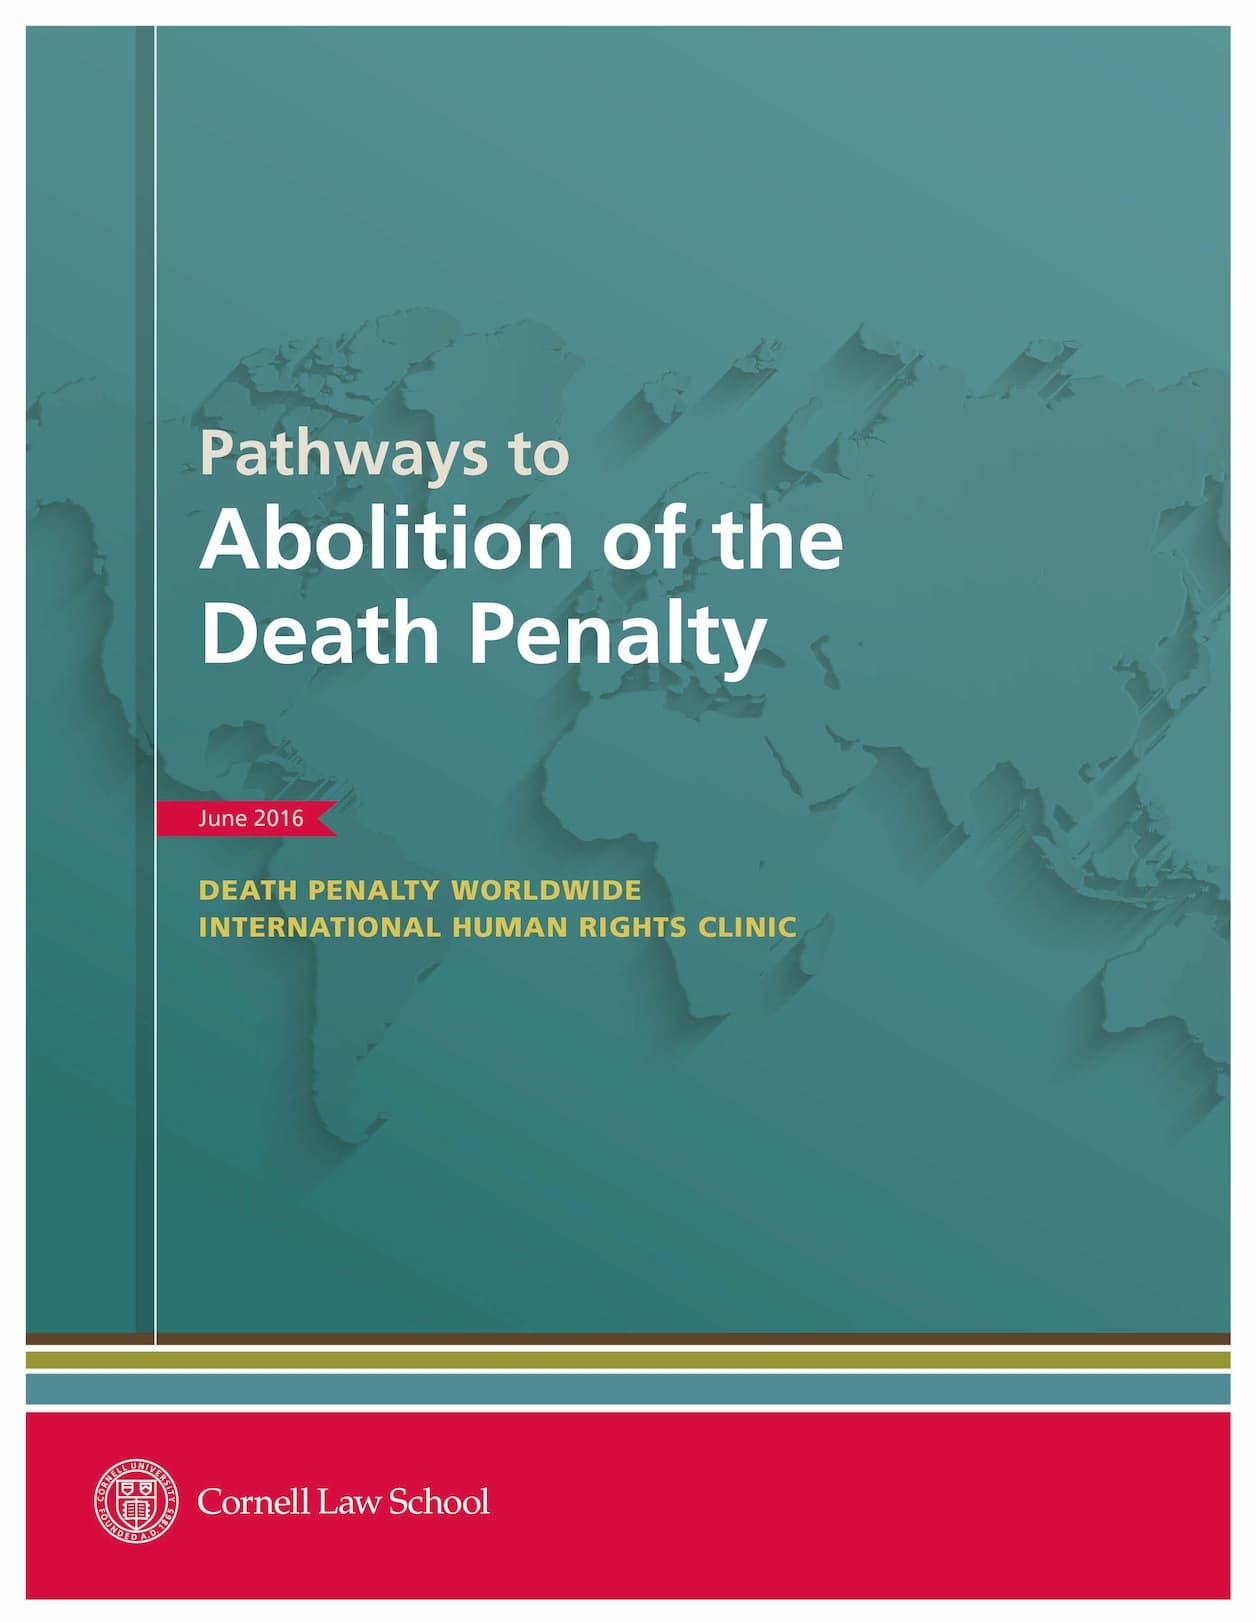 Pathways-to-Abolition-of-the-Death-Penalty Cover Photo